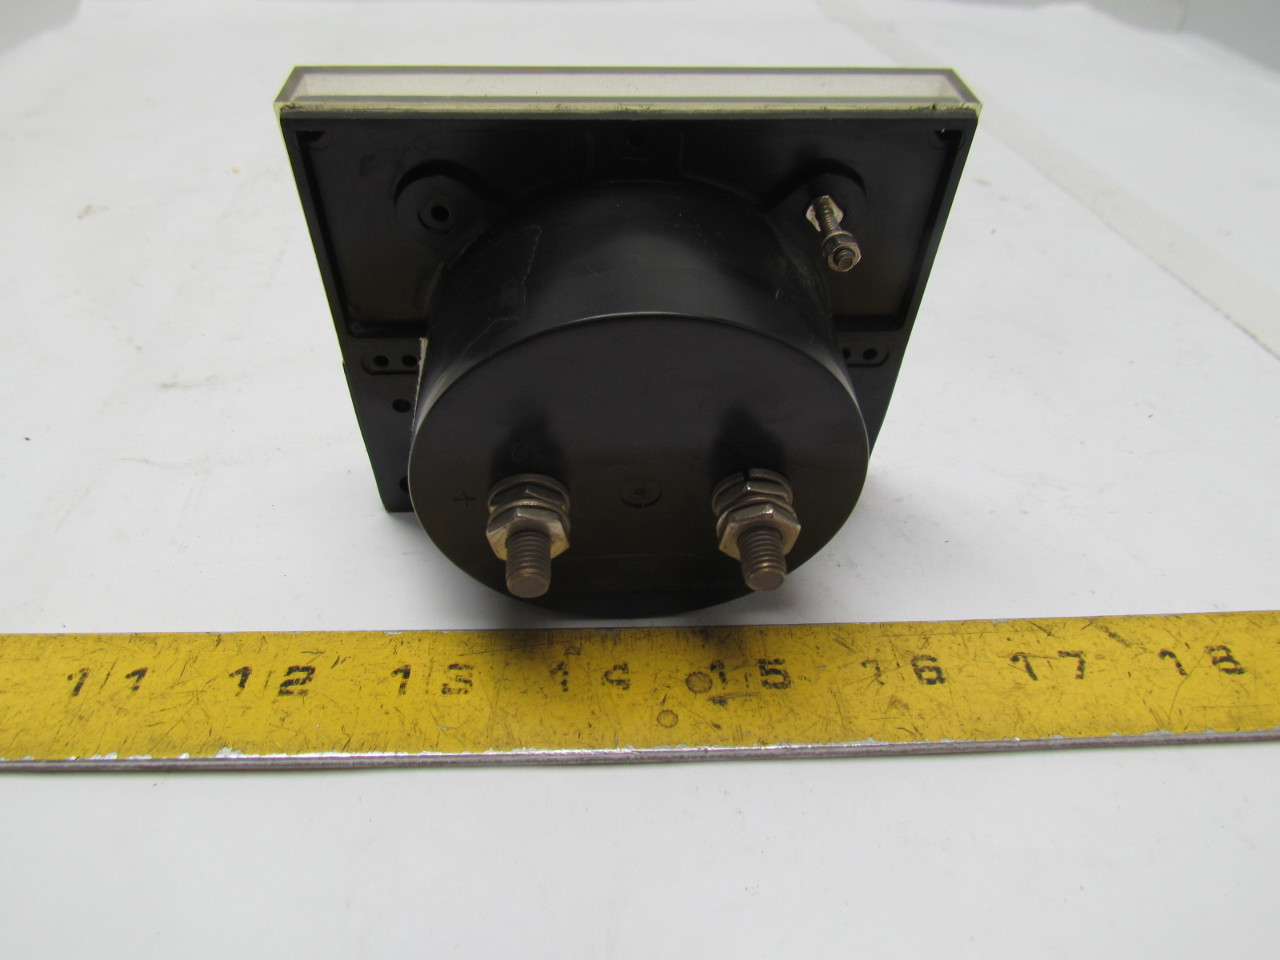 Small Amp Meter : Eil instruments yew ac amp meter small face model ebay